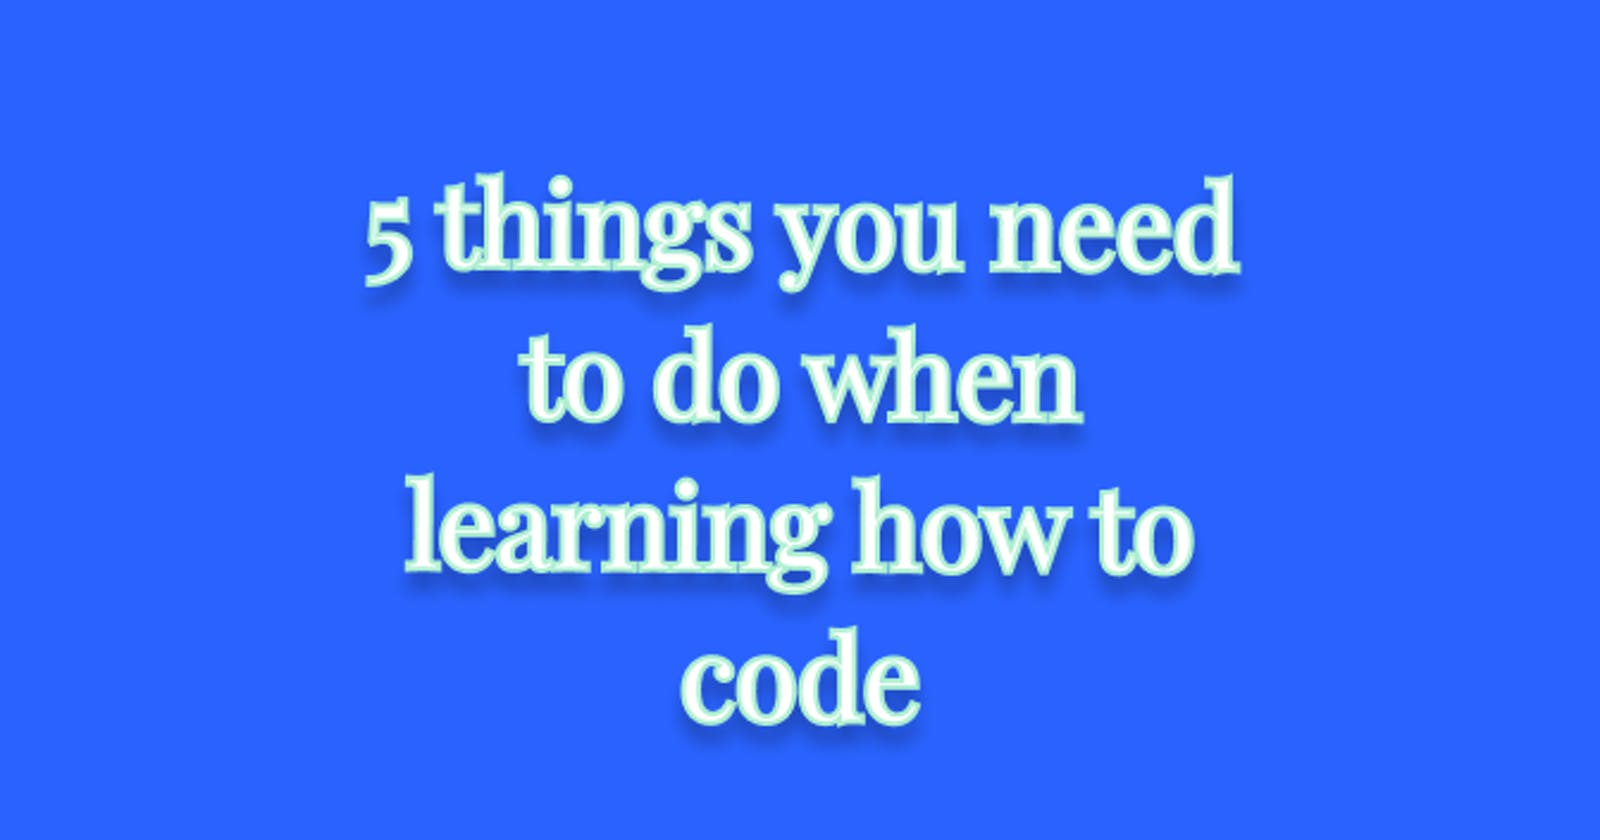 5 things you need to do when learning how to code